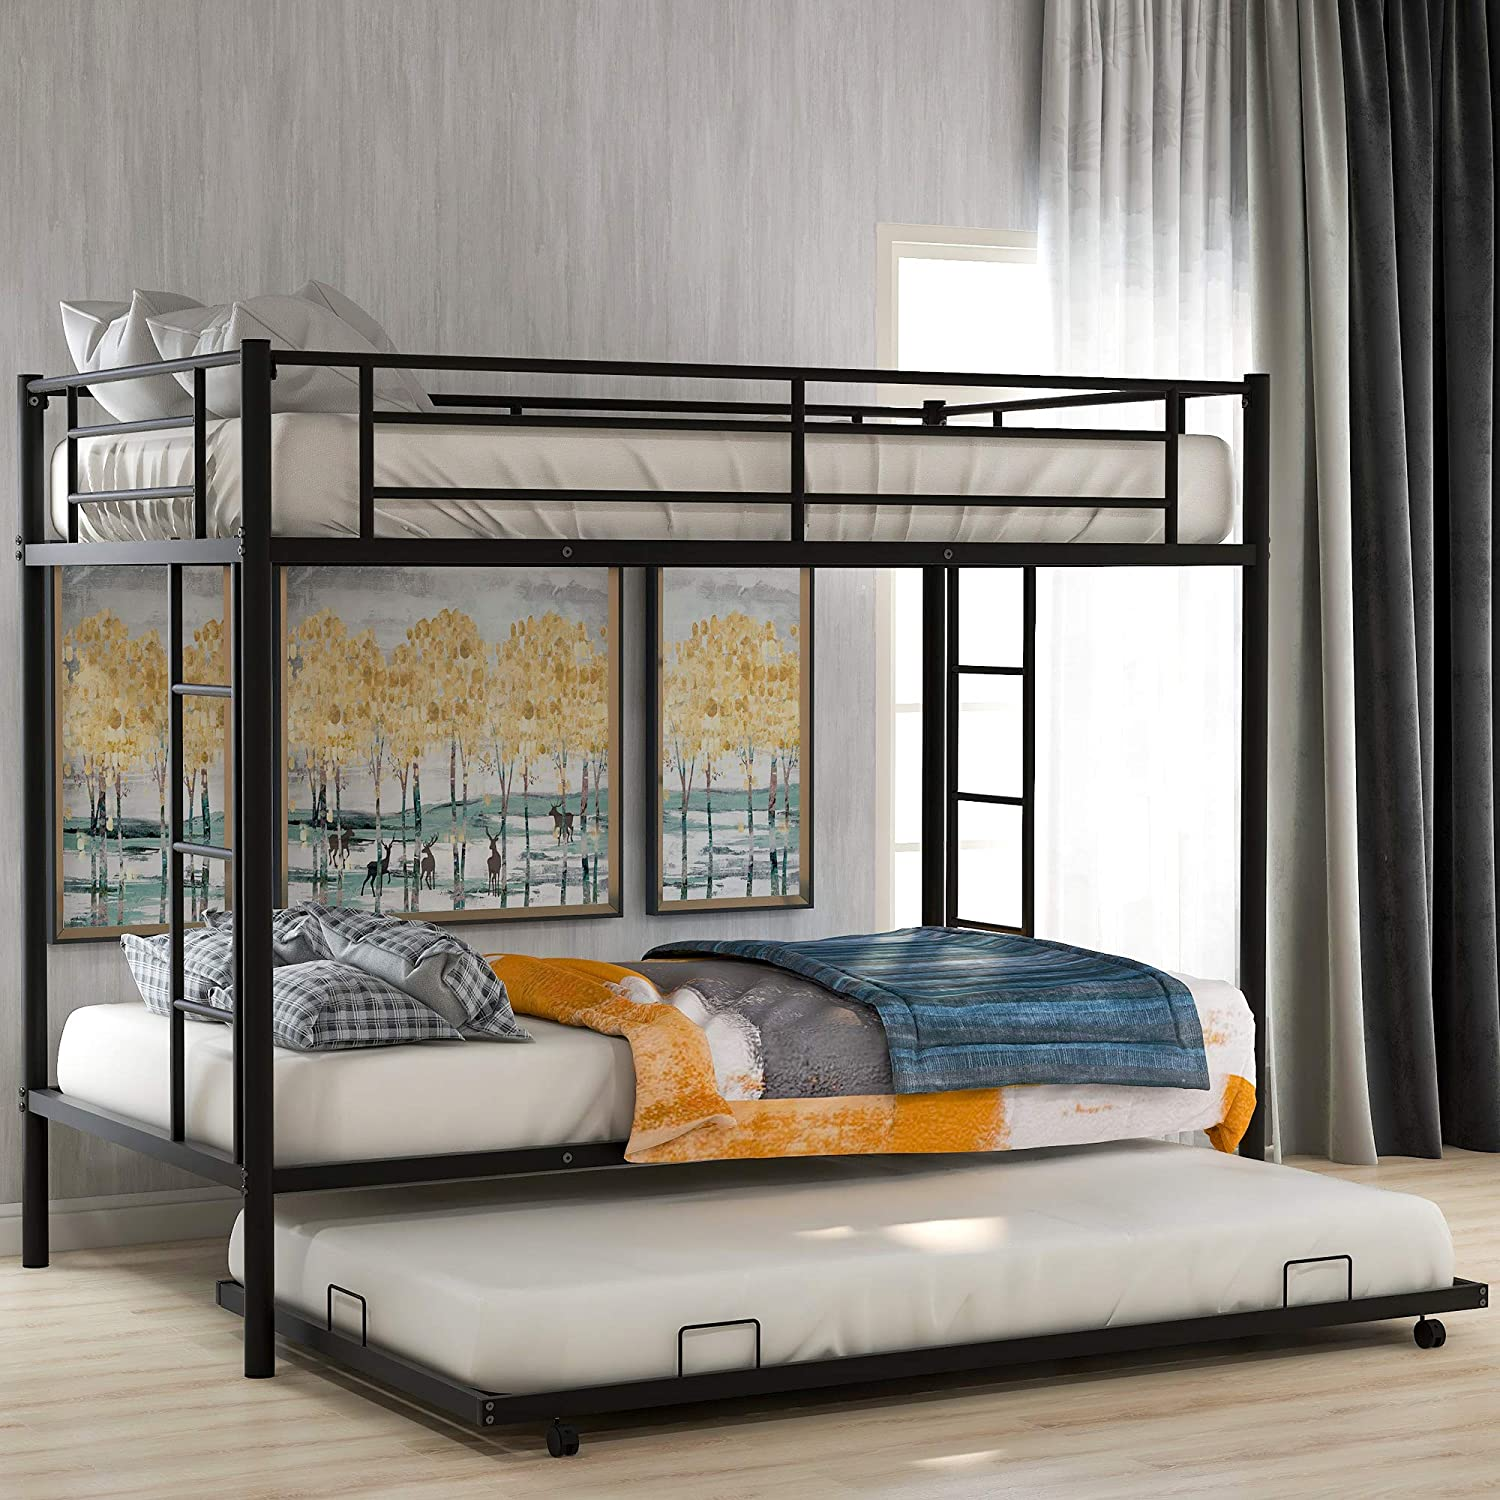 P PURLOVE New item Metal Bunk Bed Twin Trundle Over wi with Max 52% OFF